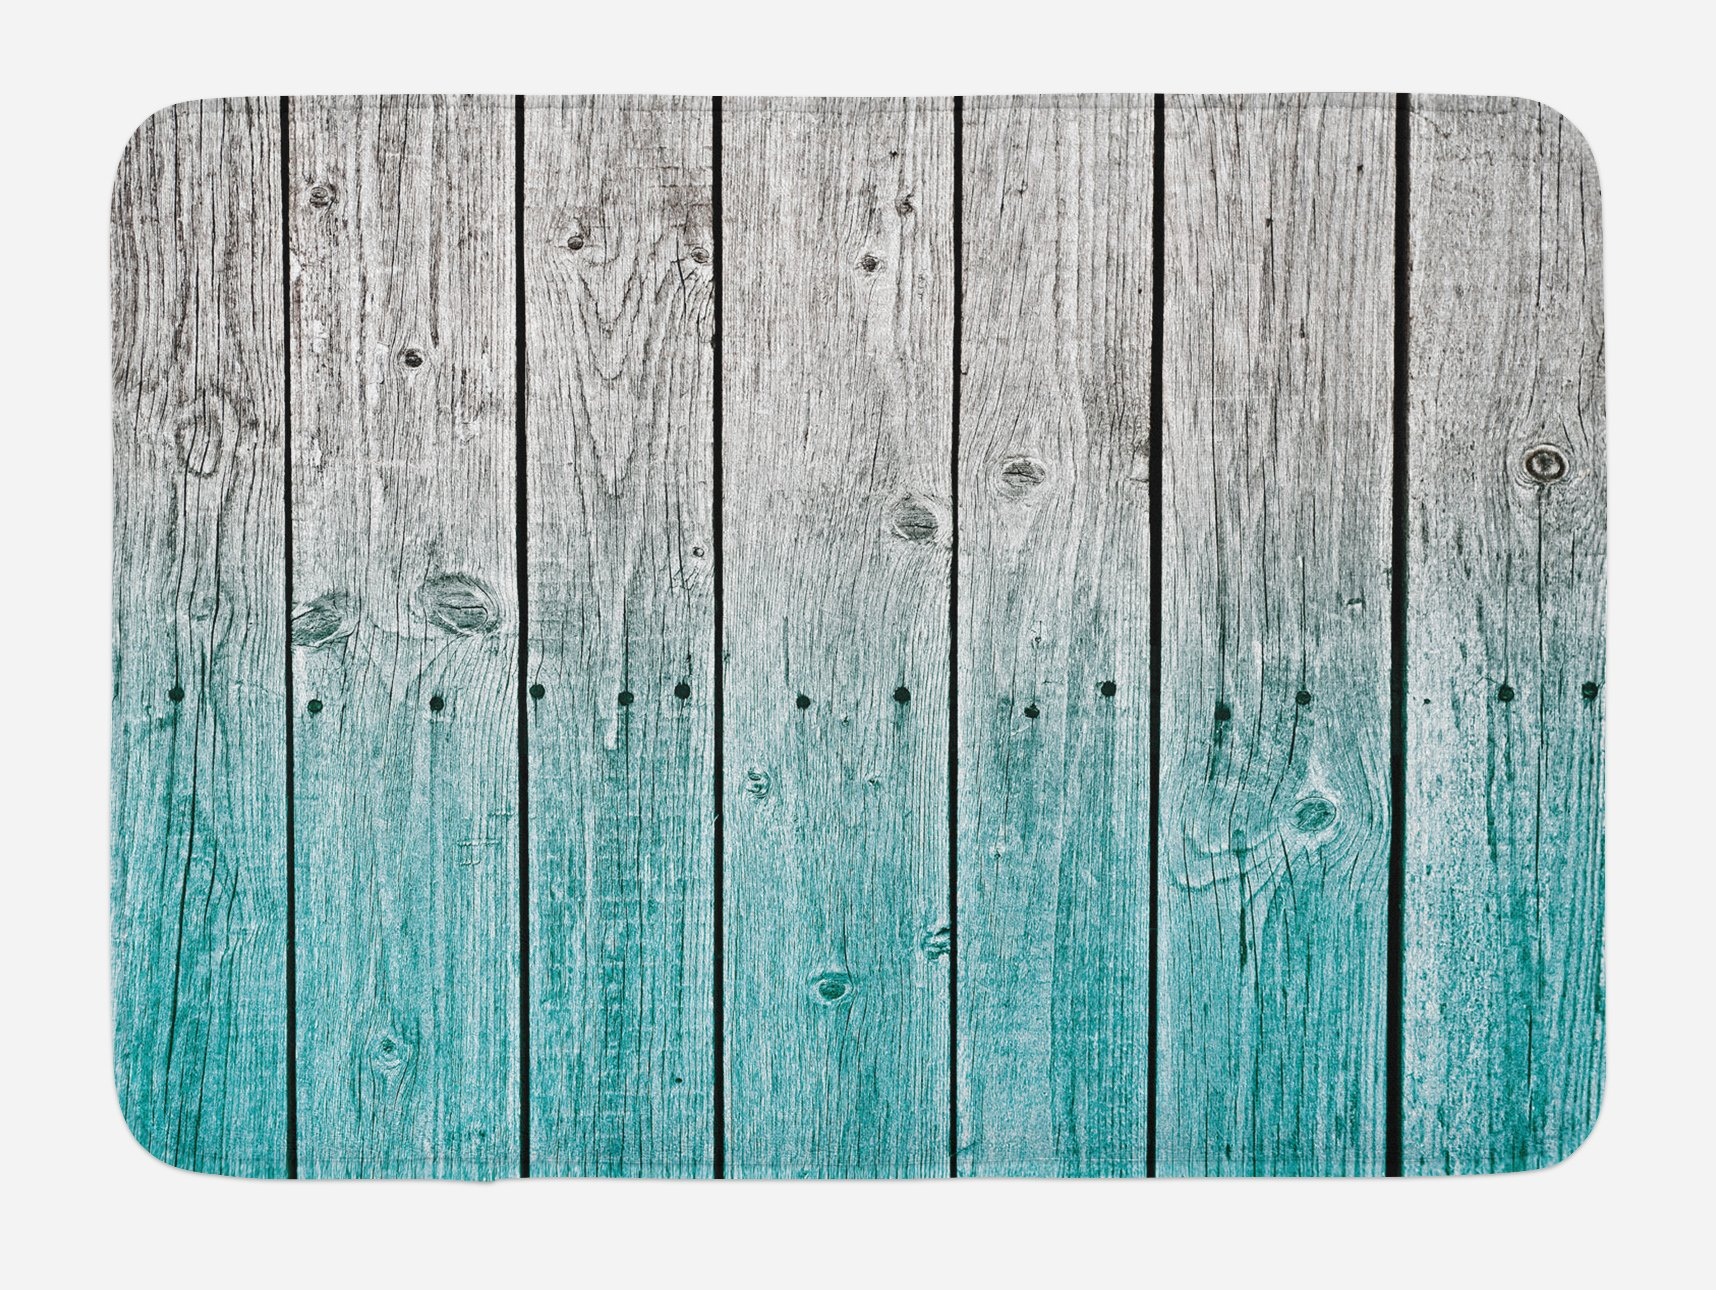 Ambesonne Rustic Bath Mat, Wood Panels Background with Digital Tones Effect Country House Art Image, Plush Bathroom Decor Mat with Non Slip Backing, 29.5 W X 17.5 W Inches, Pale Blue and Grey